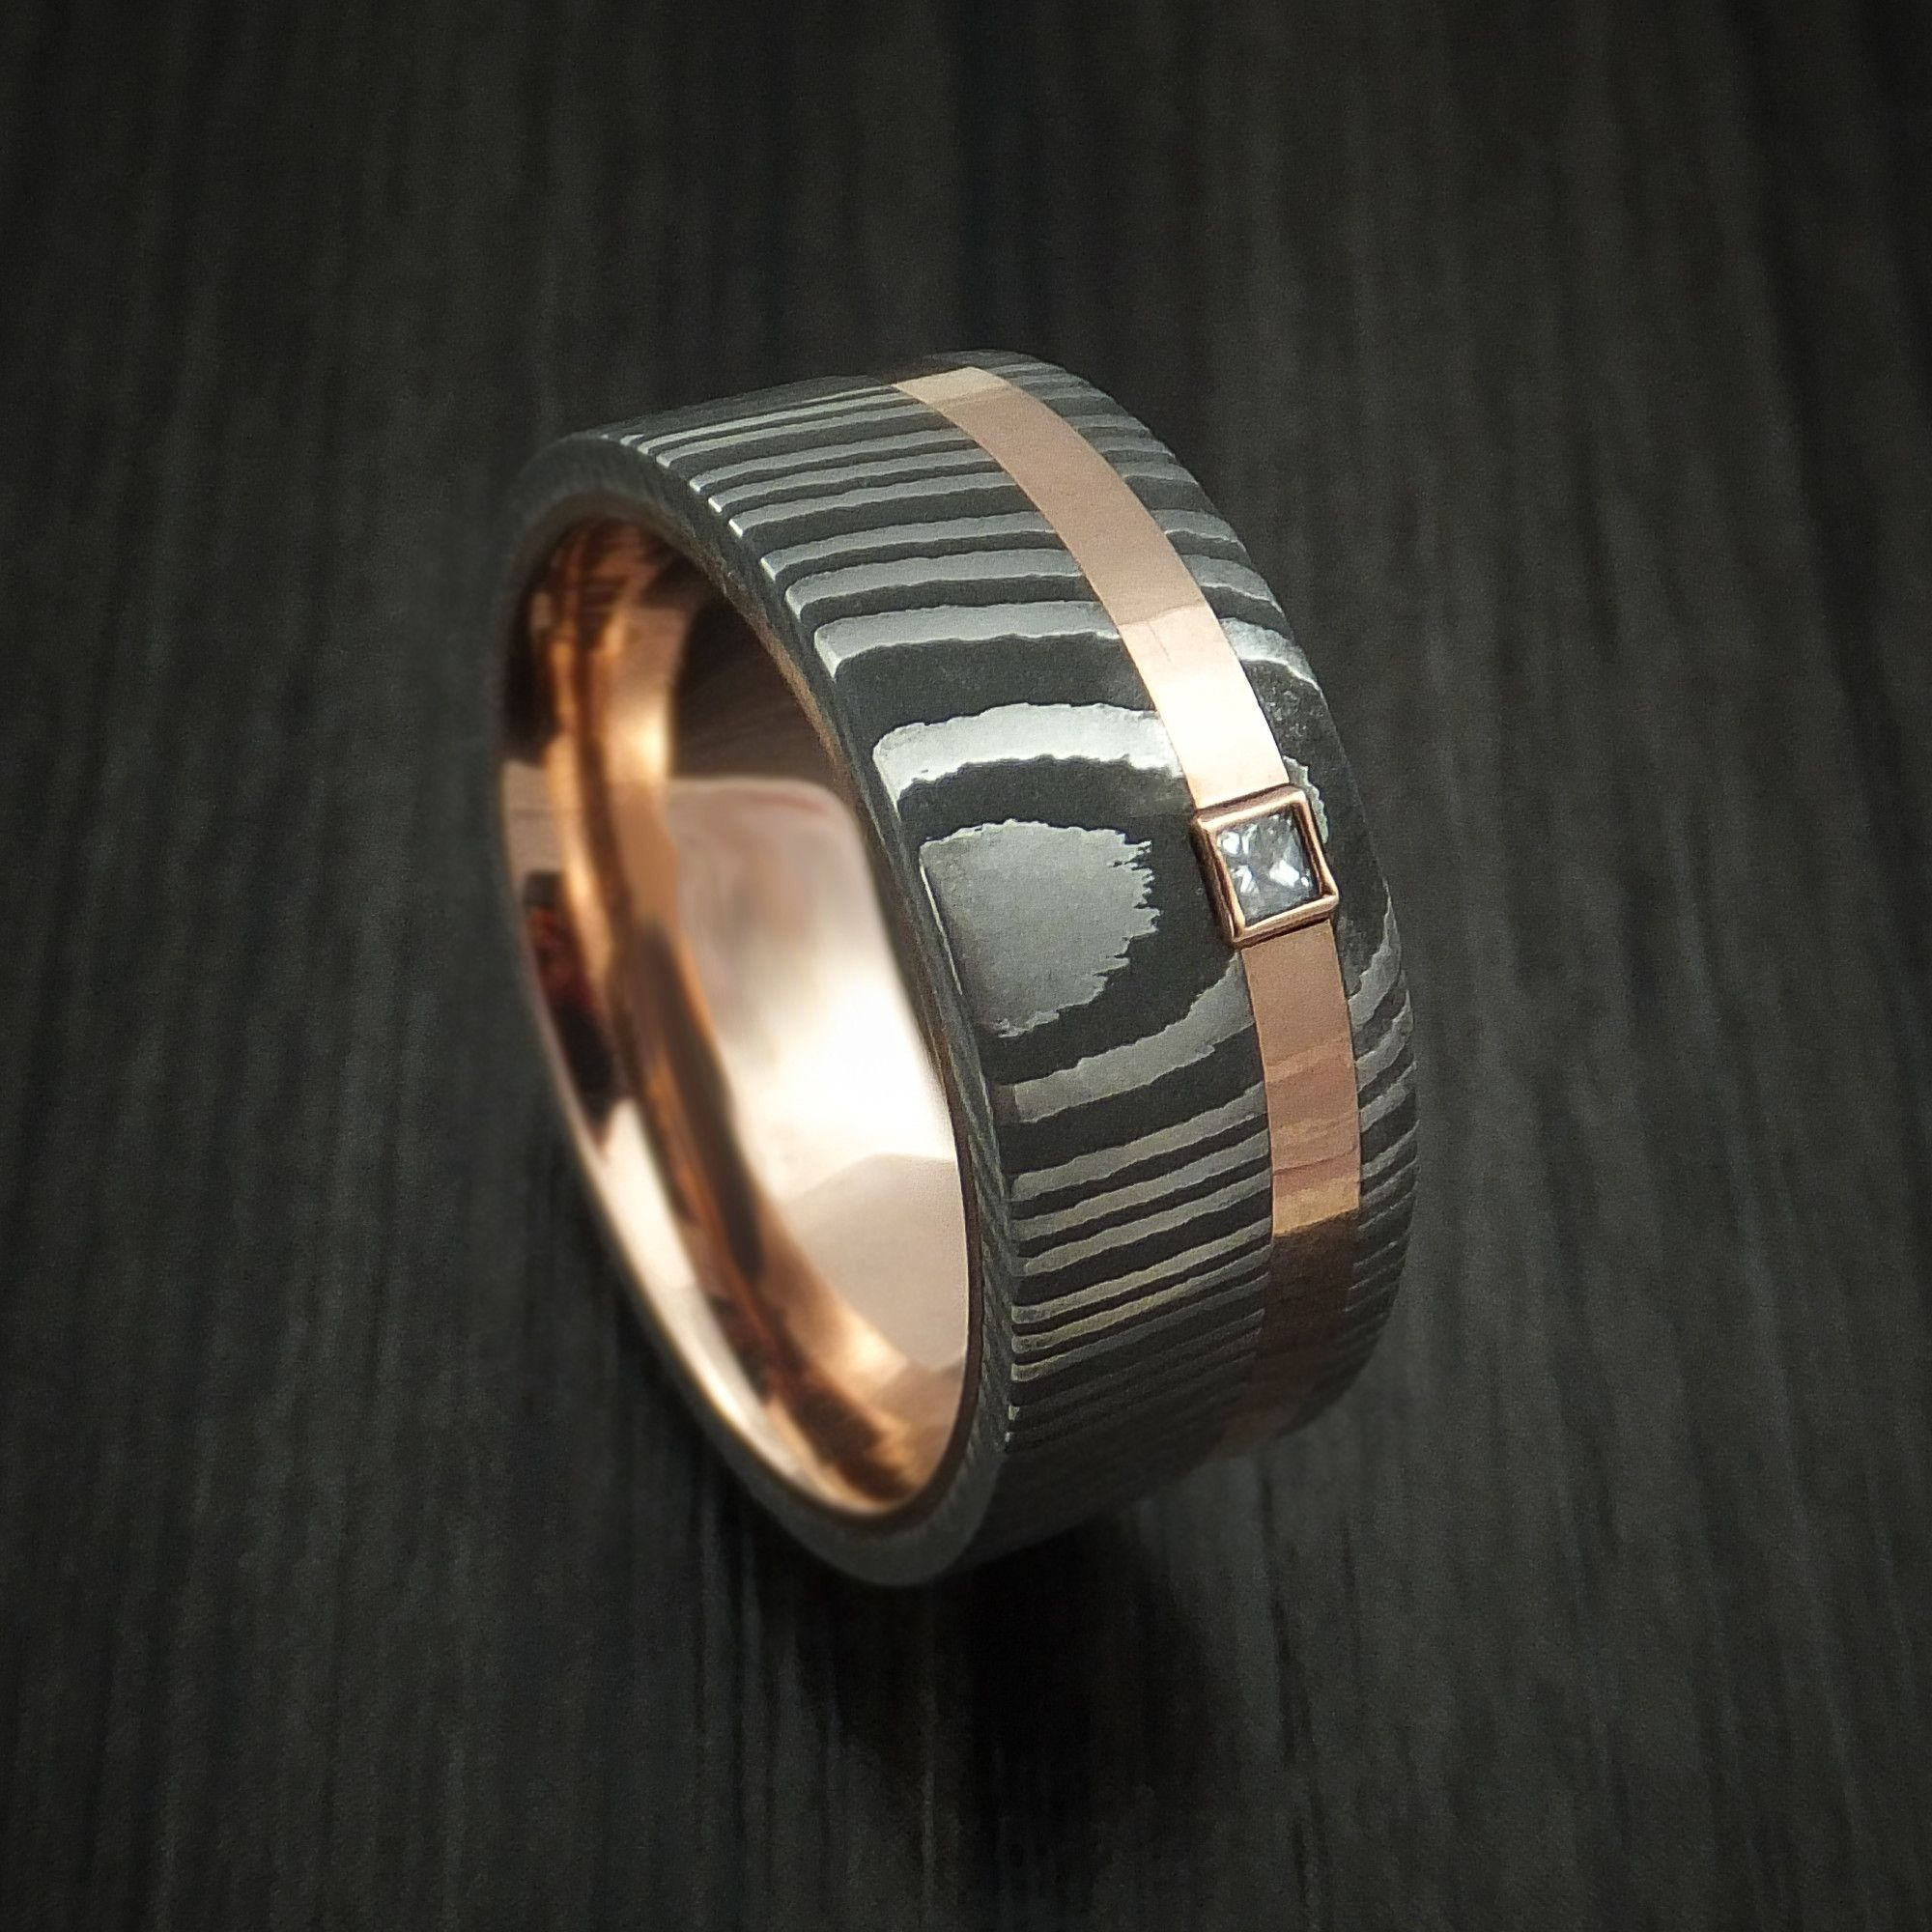 Damascus Steel Ring with 14k Rose Gold Inlay and Sleeve and